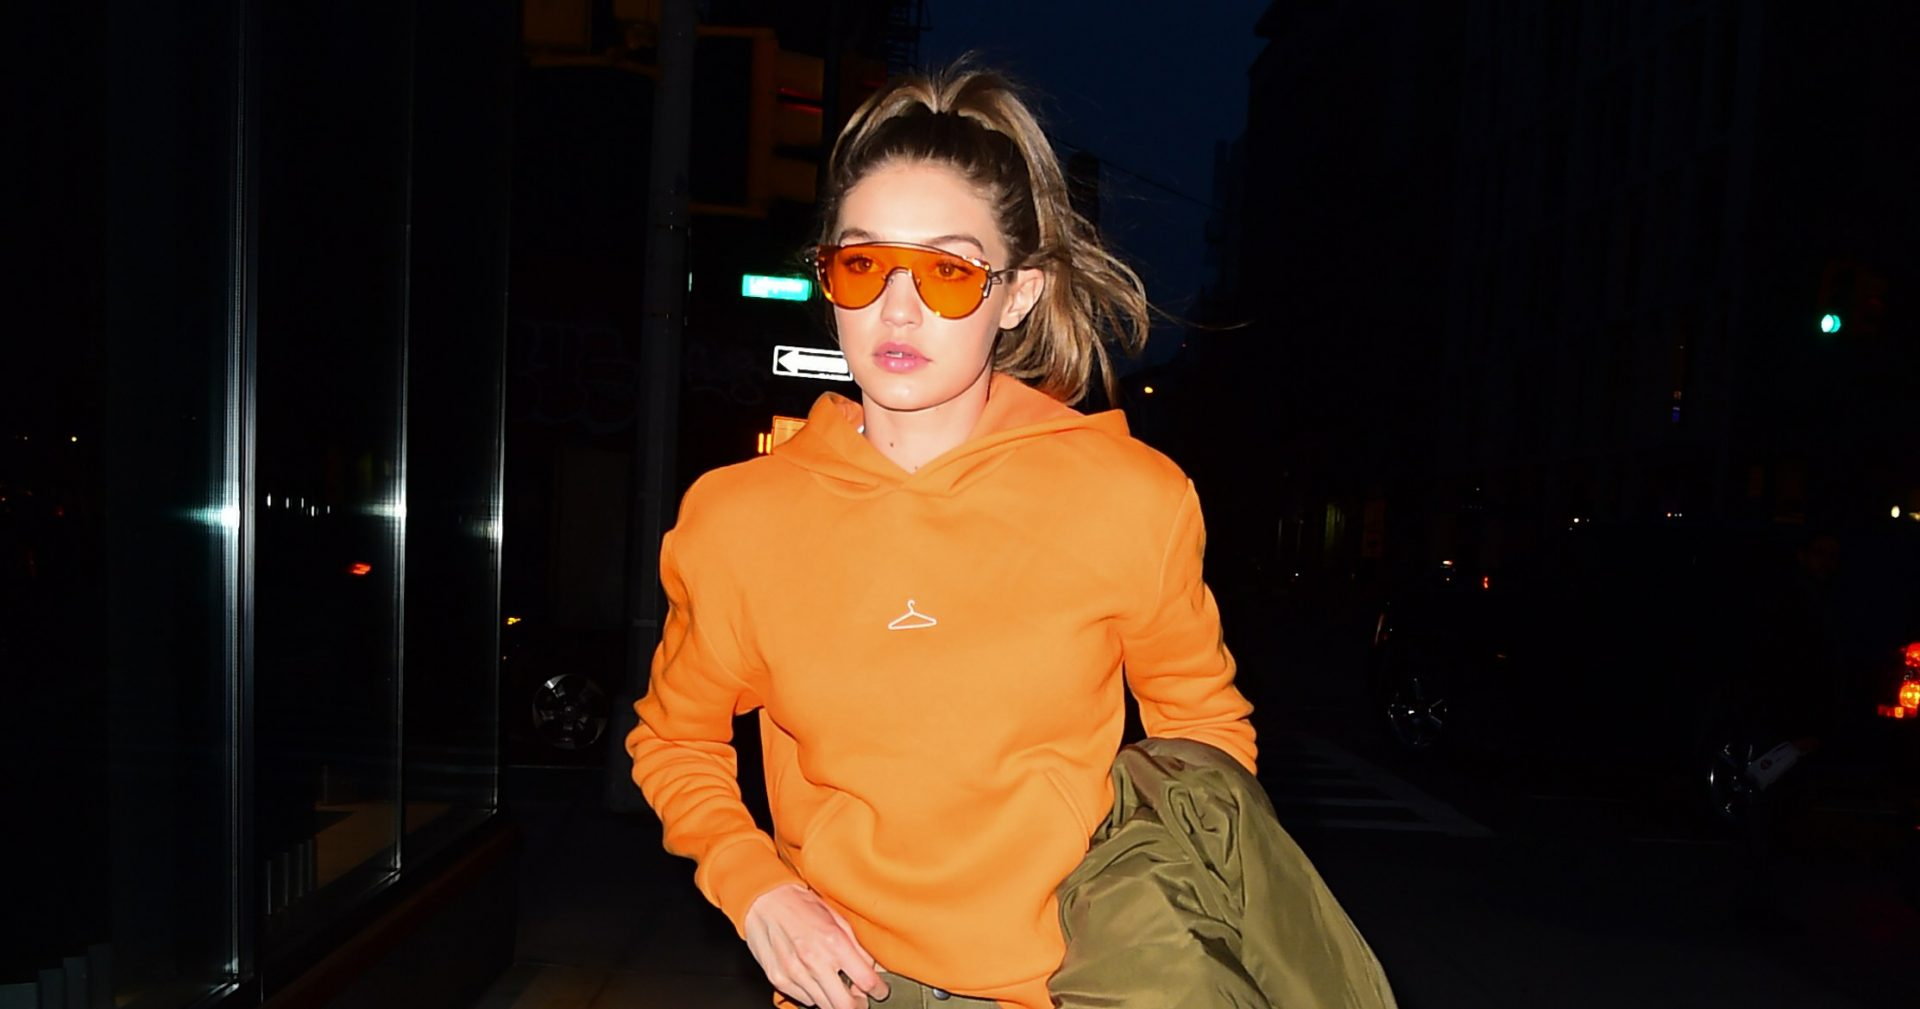 ray bans Acne Studios Chloe Smoke x Mirrors Balmain Anna Karin Karlsson Tom Ford 6 Aviator Sunglasses Trends for Women in 2017 Buy Shop Online Trend Women Sunglasses Glasses Victoria Beckham Gigi Hadid Bella Hadid Khloe Kardashian Chrissy Teigen Lady Gaga Hailey Baldwin